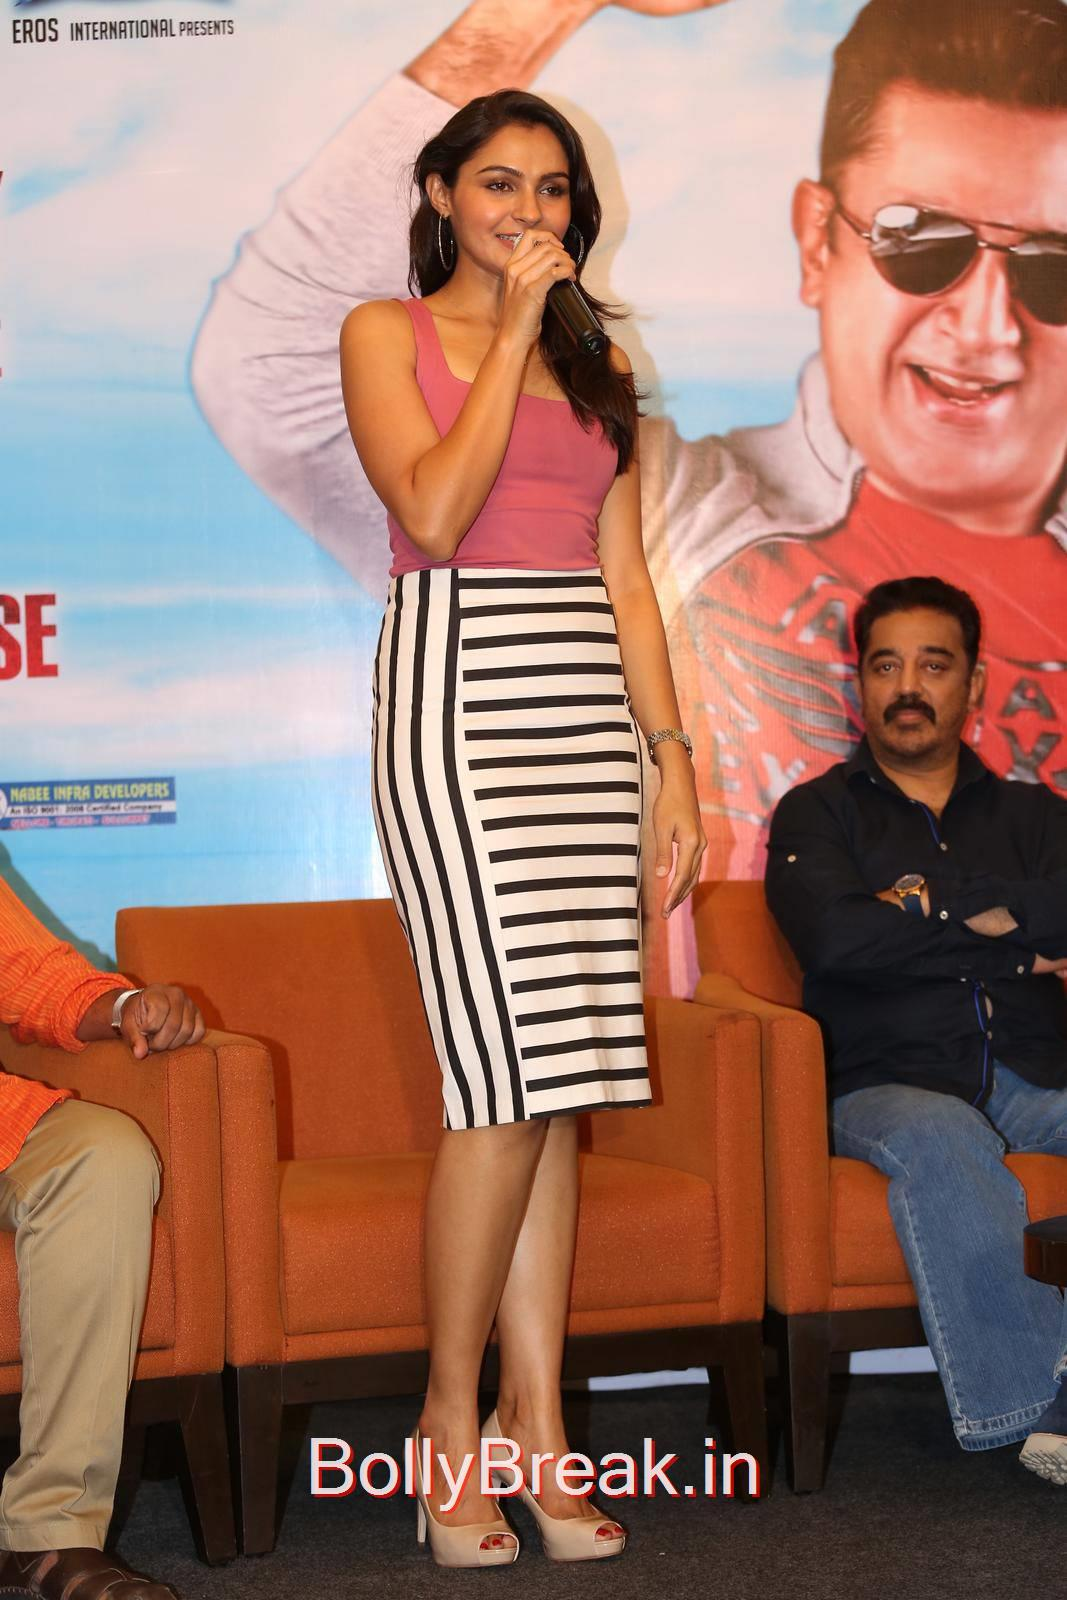 Kamal Hassan-Uttama Villain Cinema Press Meet Pics, Hot HD Images of Andrea Jeremiah Pooja Kumar From Uttama Villain Movie Release Date Press Meet